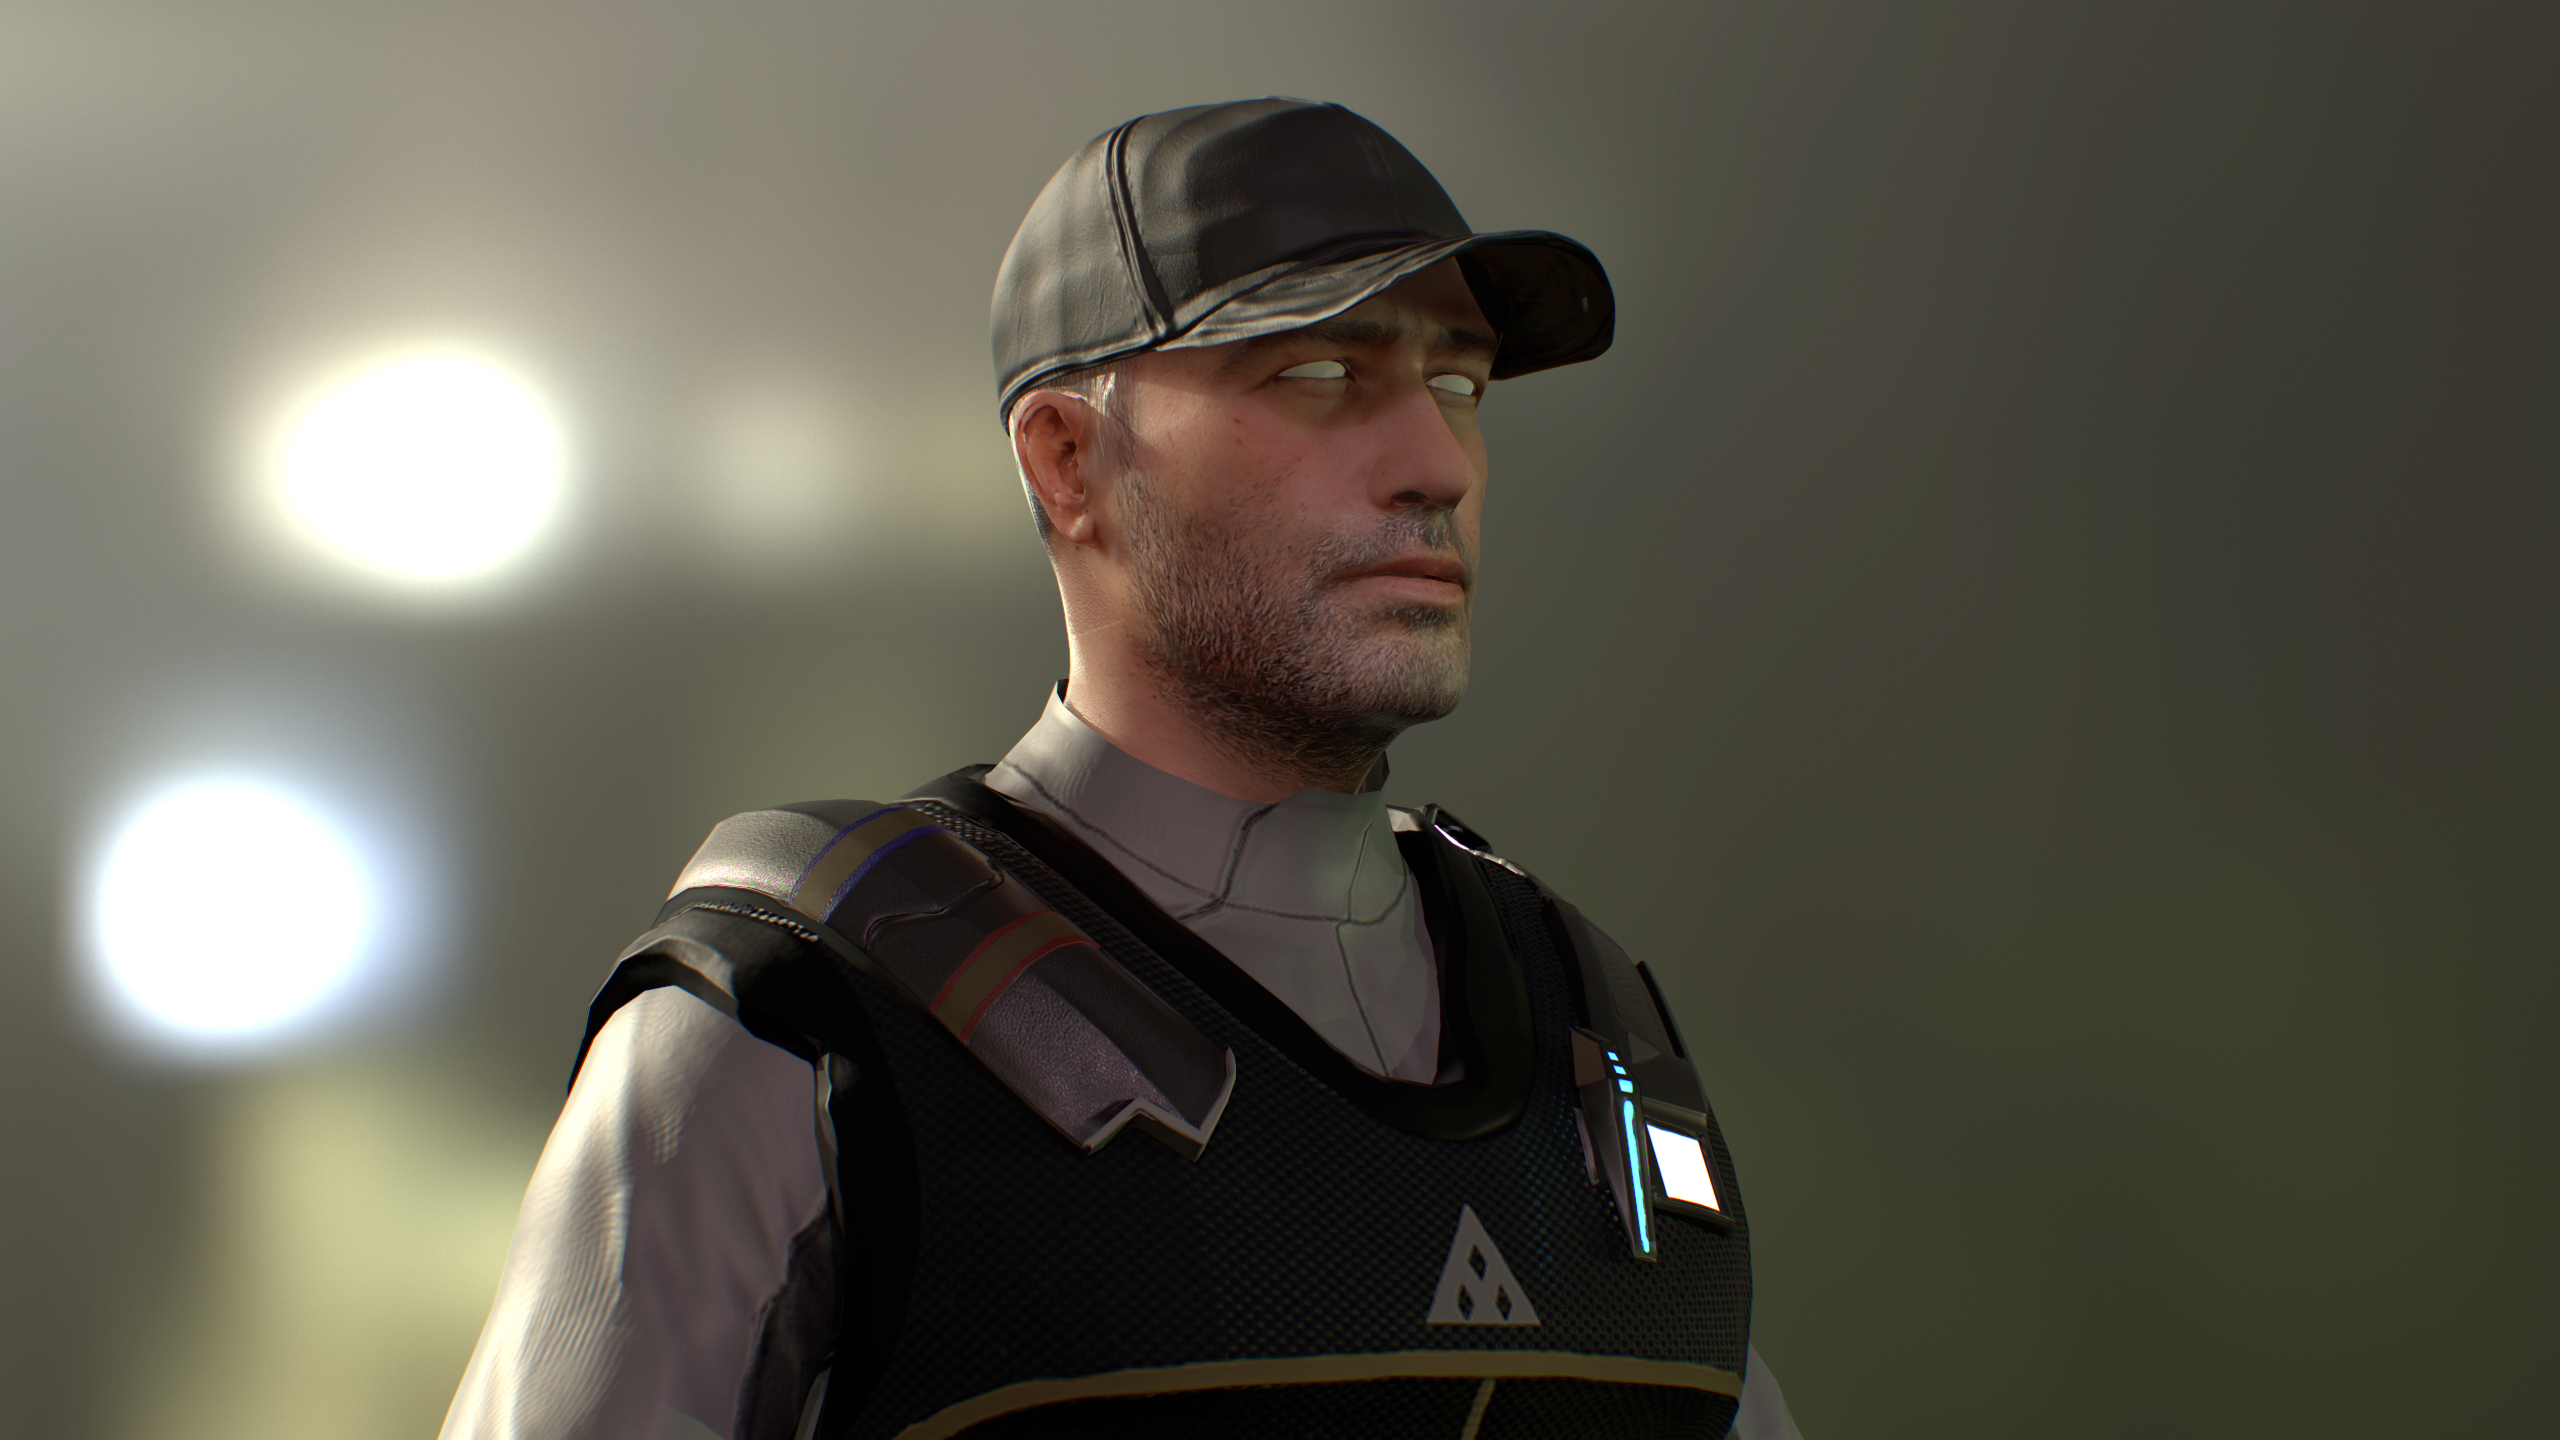 Security (3d Character Modeling and Texturing for ManMade: SciFi Action Adventure Game)